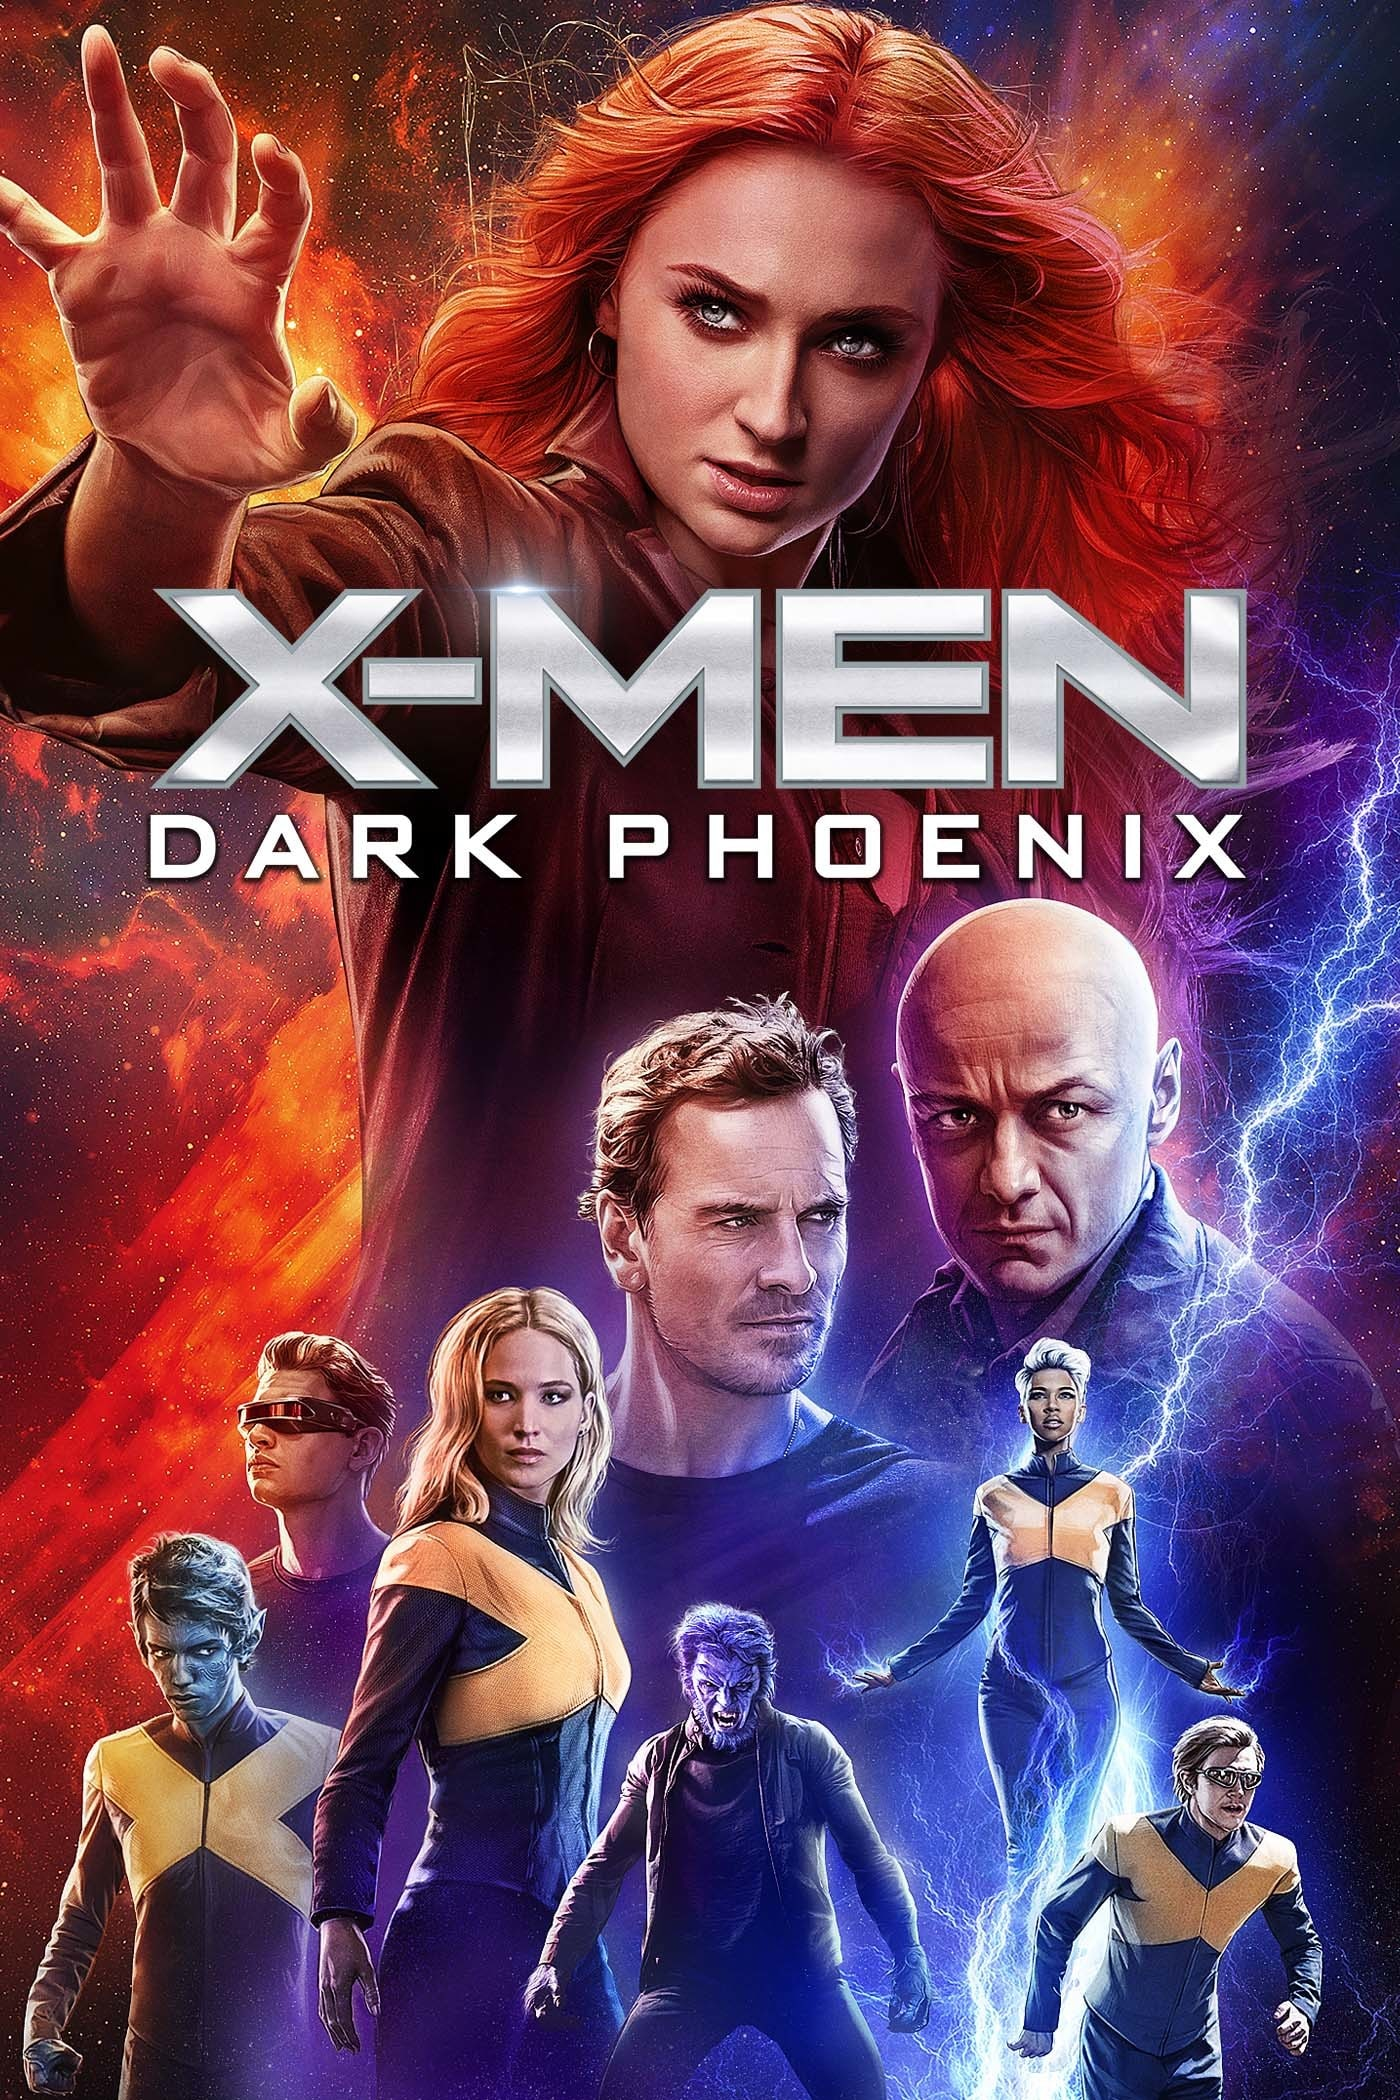 X-Men Dark Phoenix (2021) Hindi Dubbed Movie HDRip 720p AAC